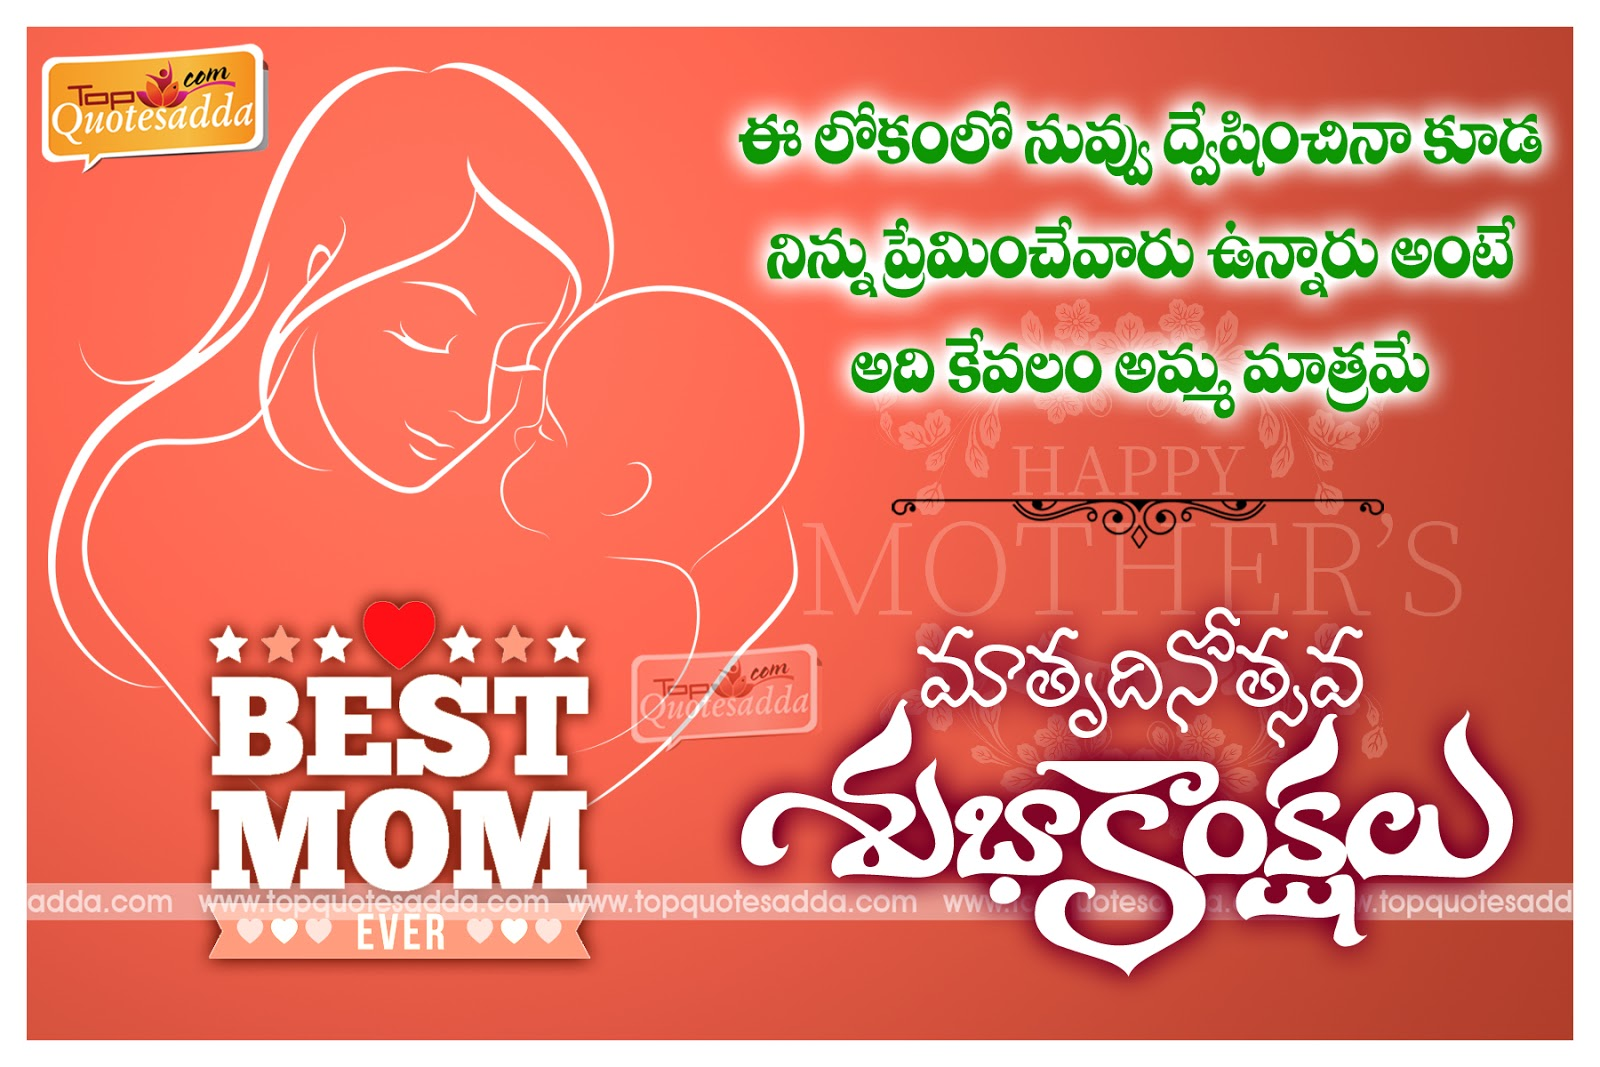 Happy Mothers Day Telugu Quotes And Greetings Topquotesadda